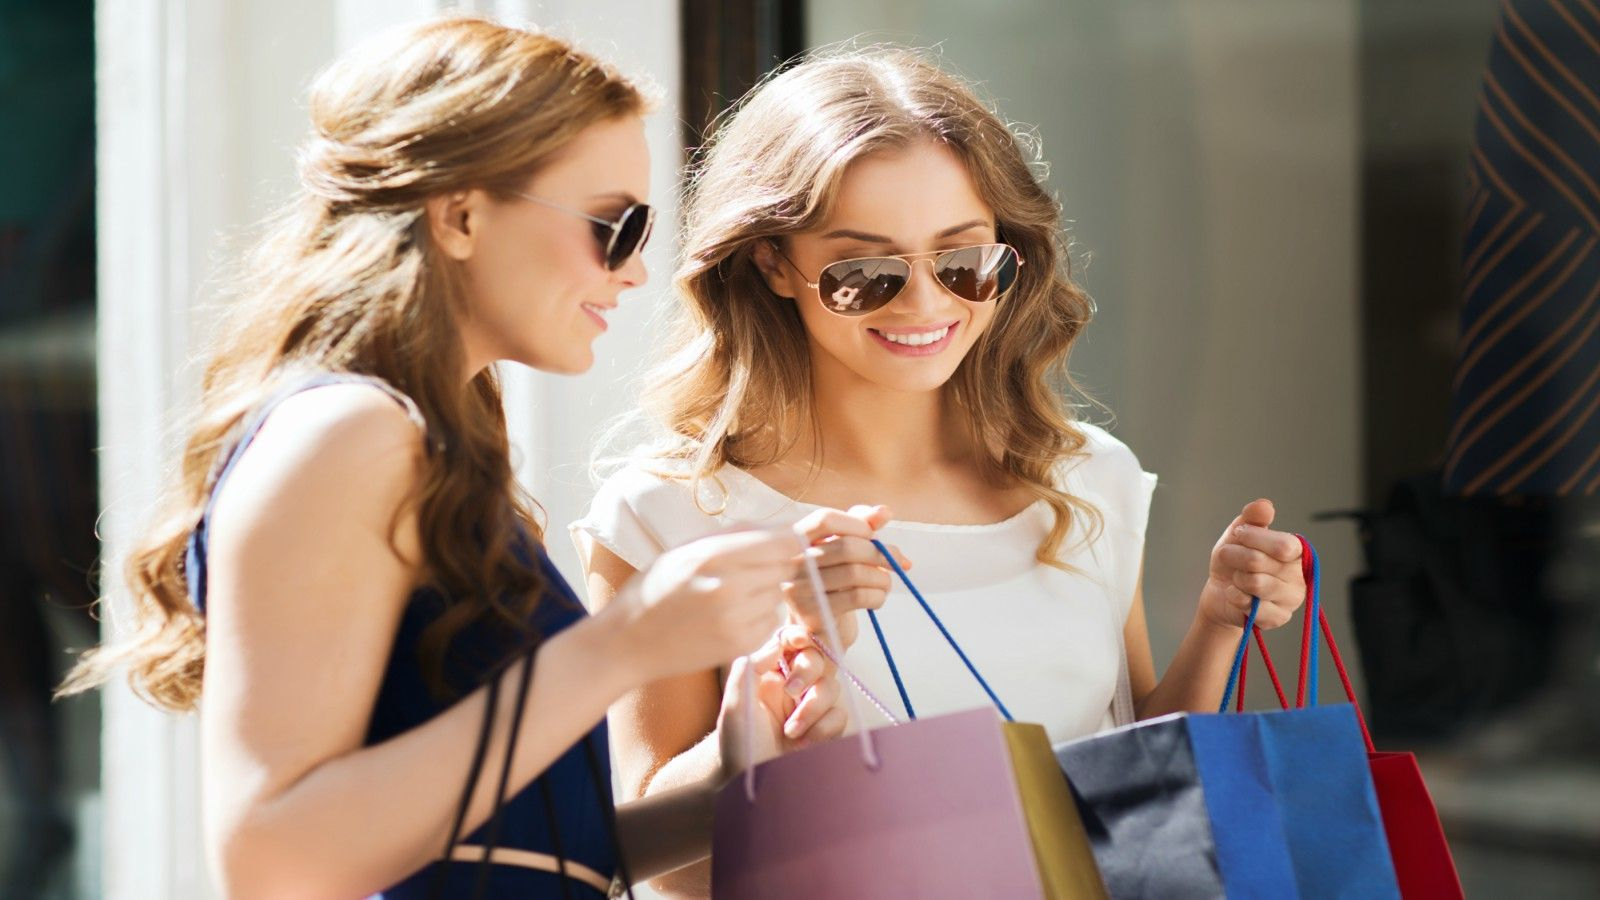 Things to do in Coral Gables - Shopping